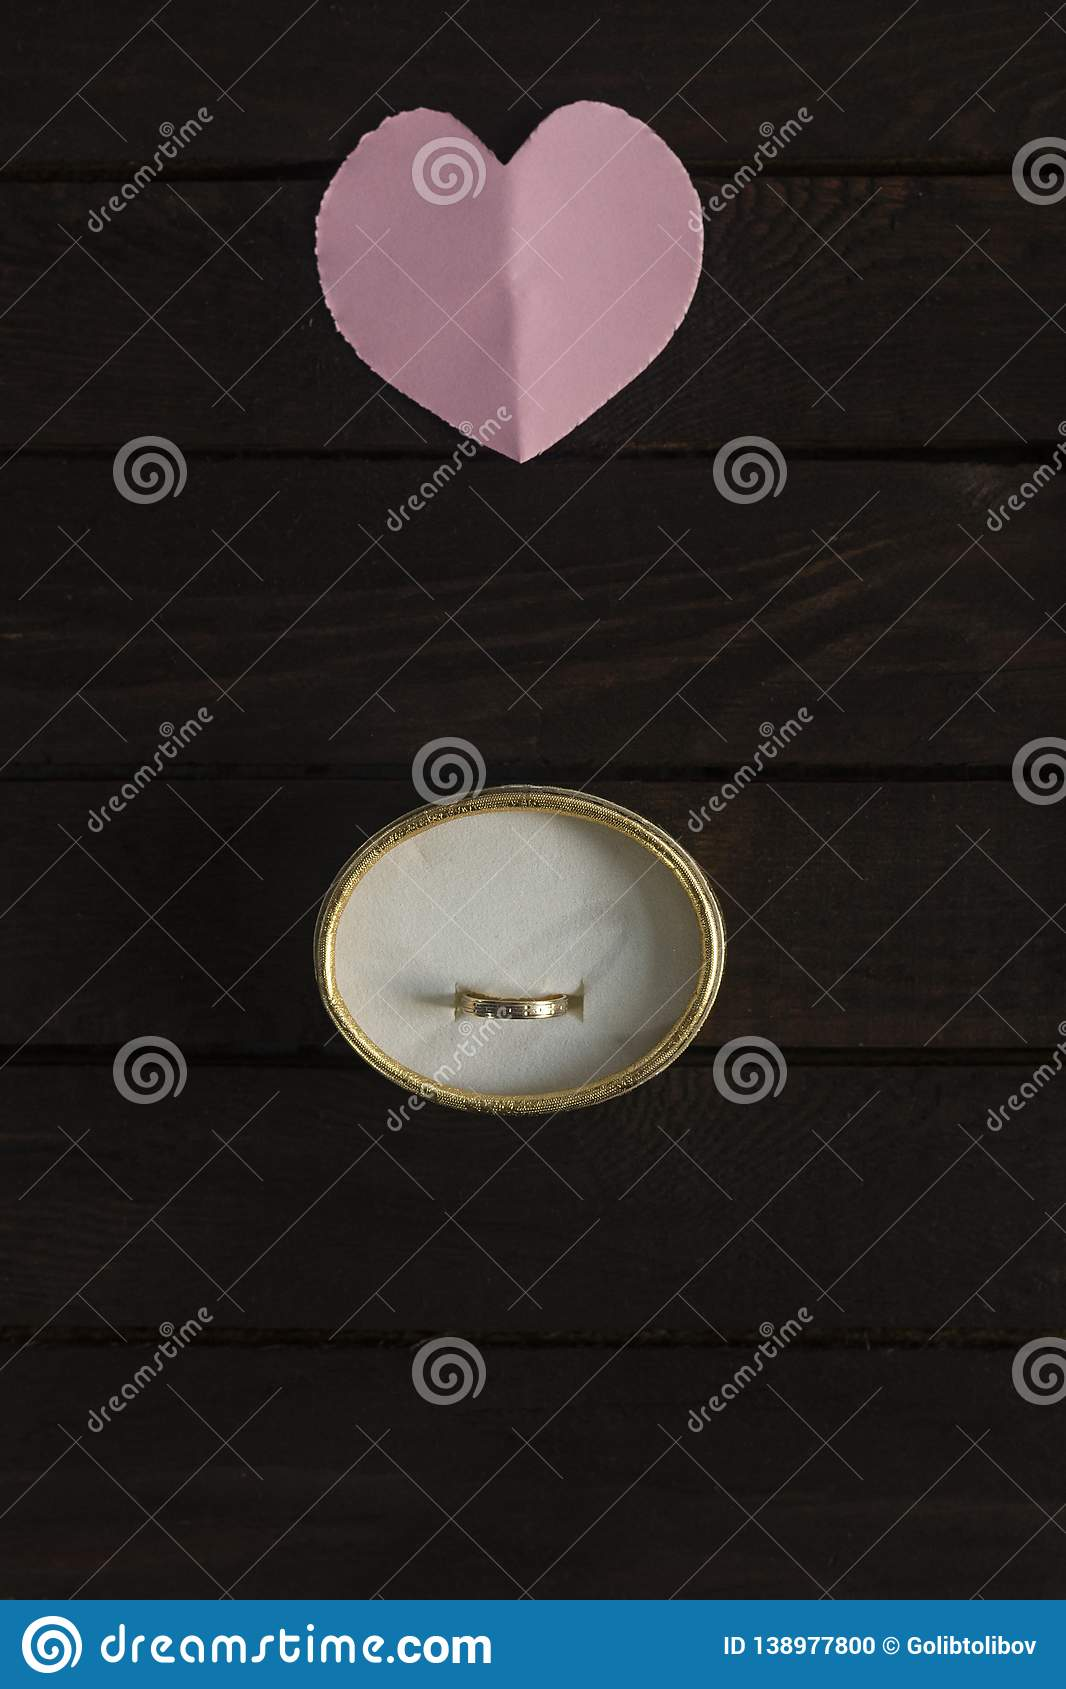 Offer of marriage. Flat lay romantic background.